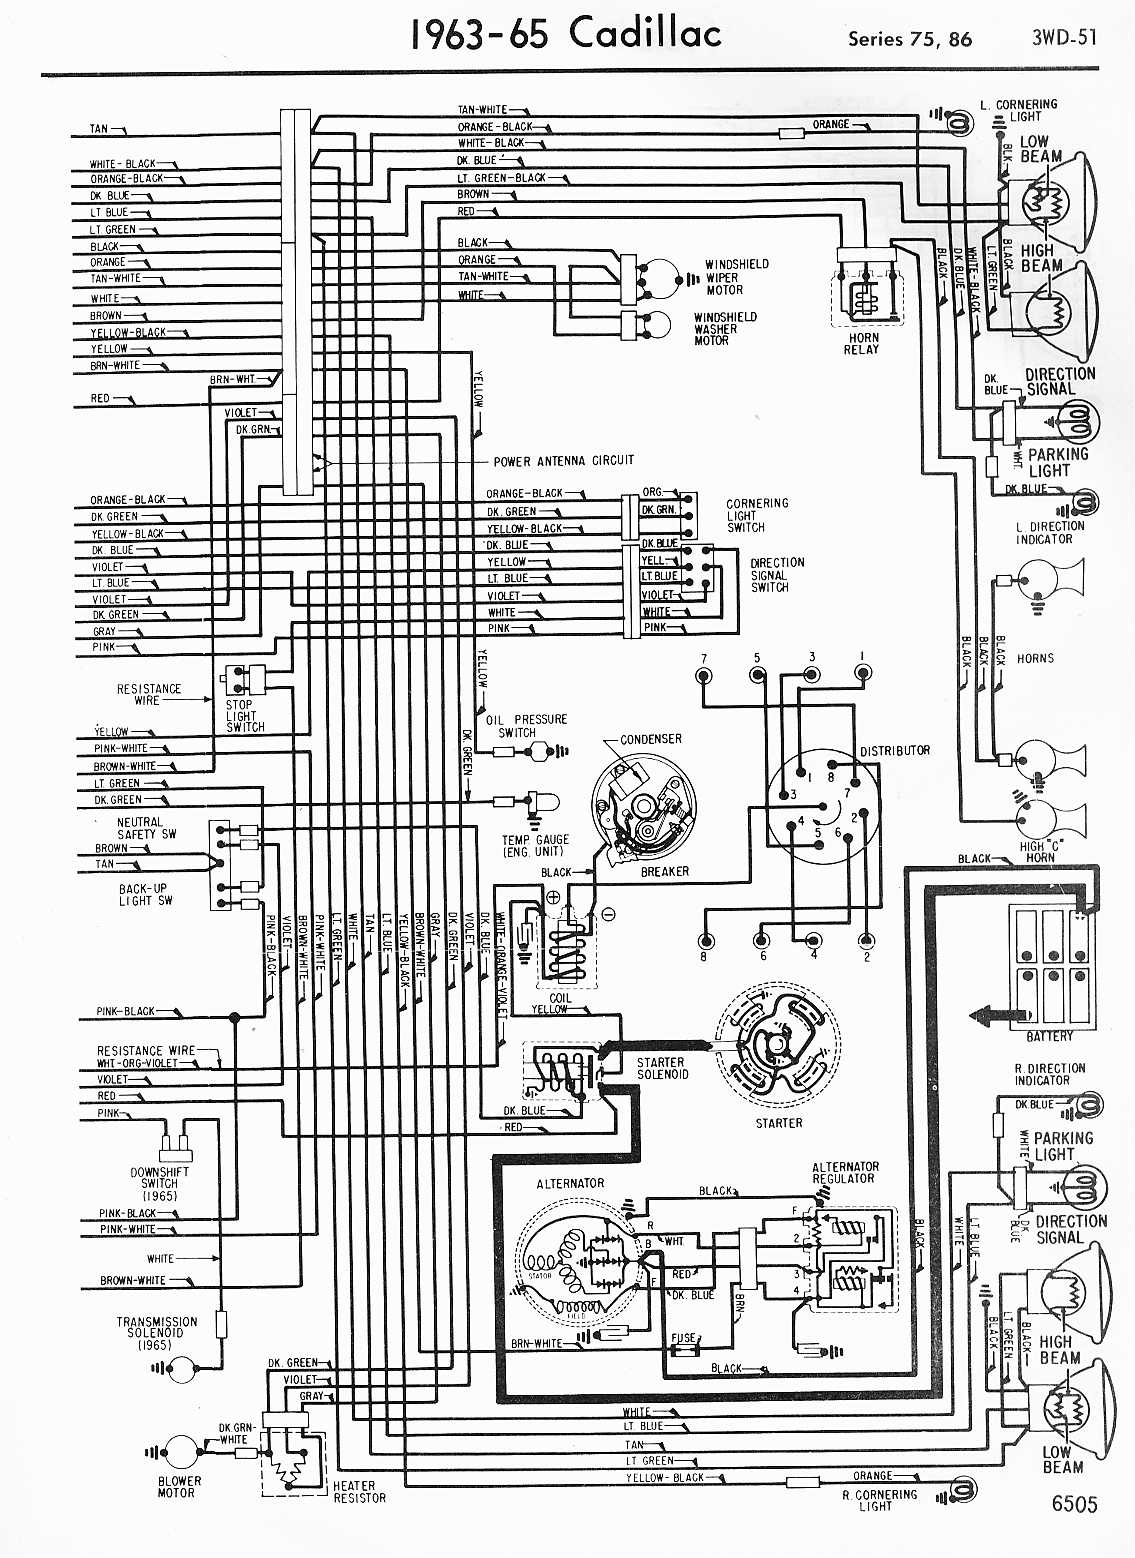 2000 Buick Century Fuse Box Diagrams Simple Guide About Wiring Plymouth Neon Diagram Cadillac 1957 1965 2007 Volkswagen Passat